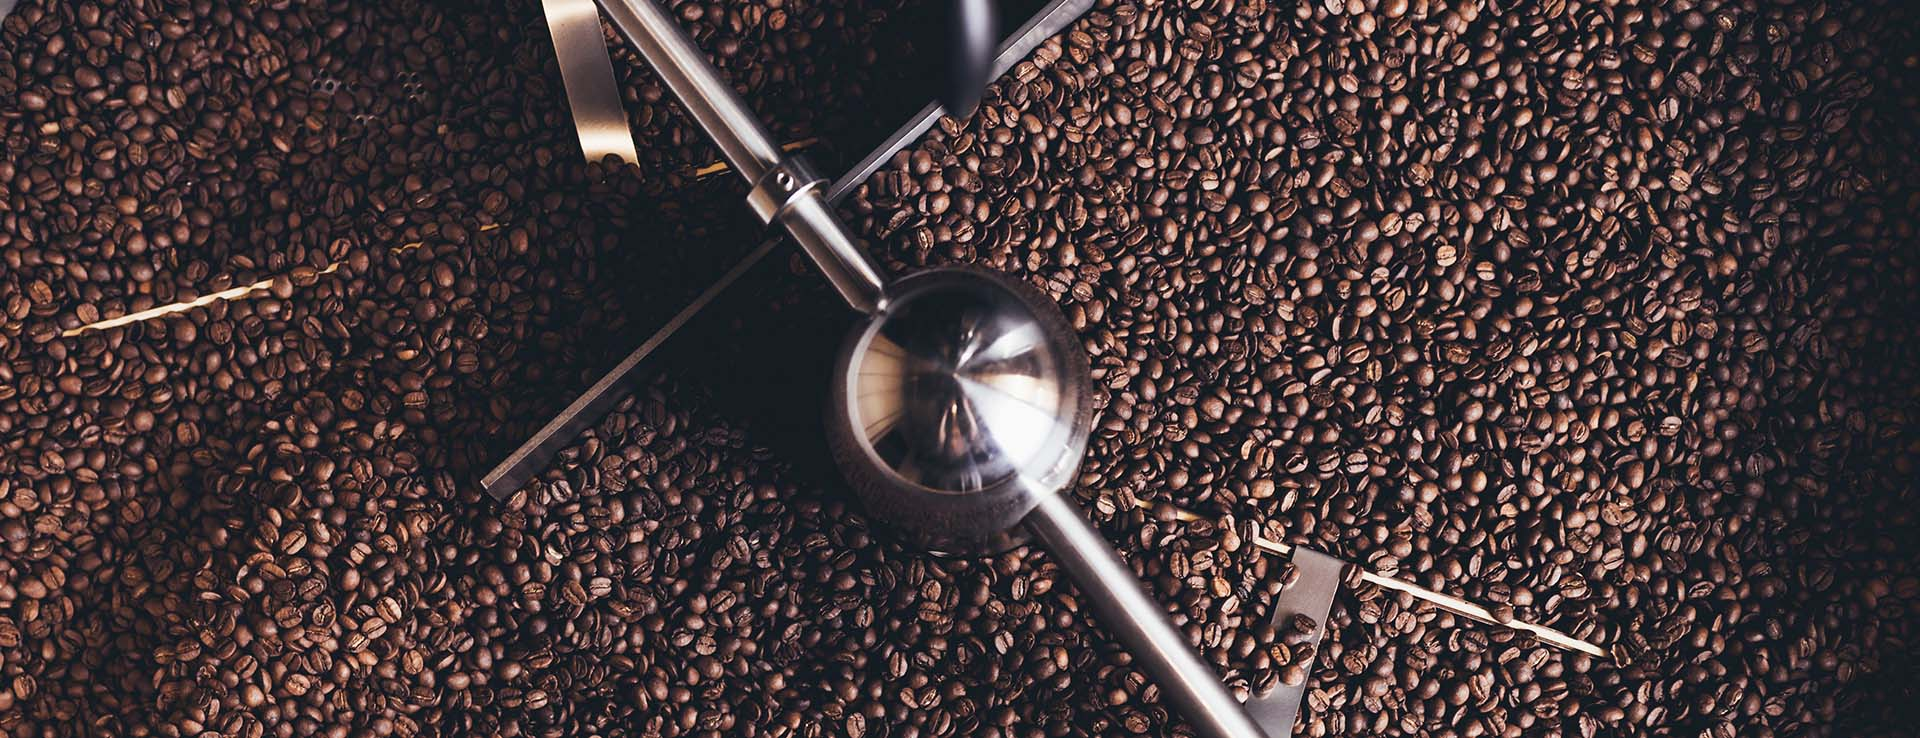 coffee-roasting-byc.jpg